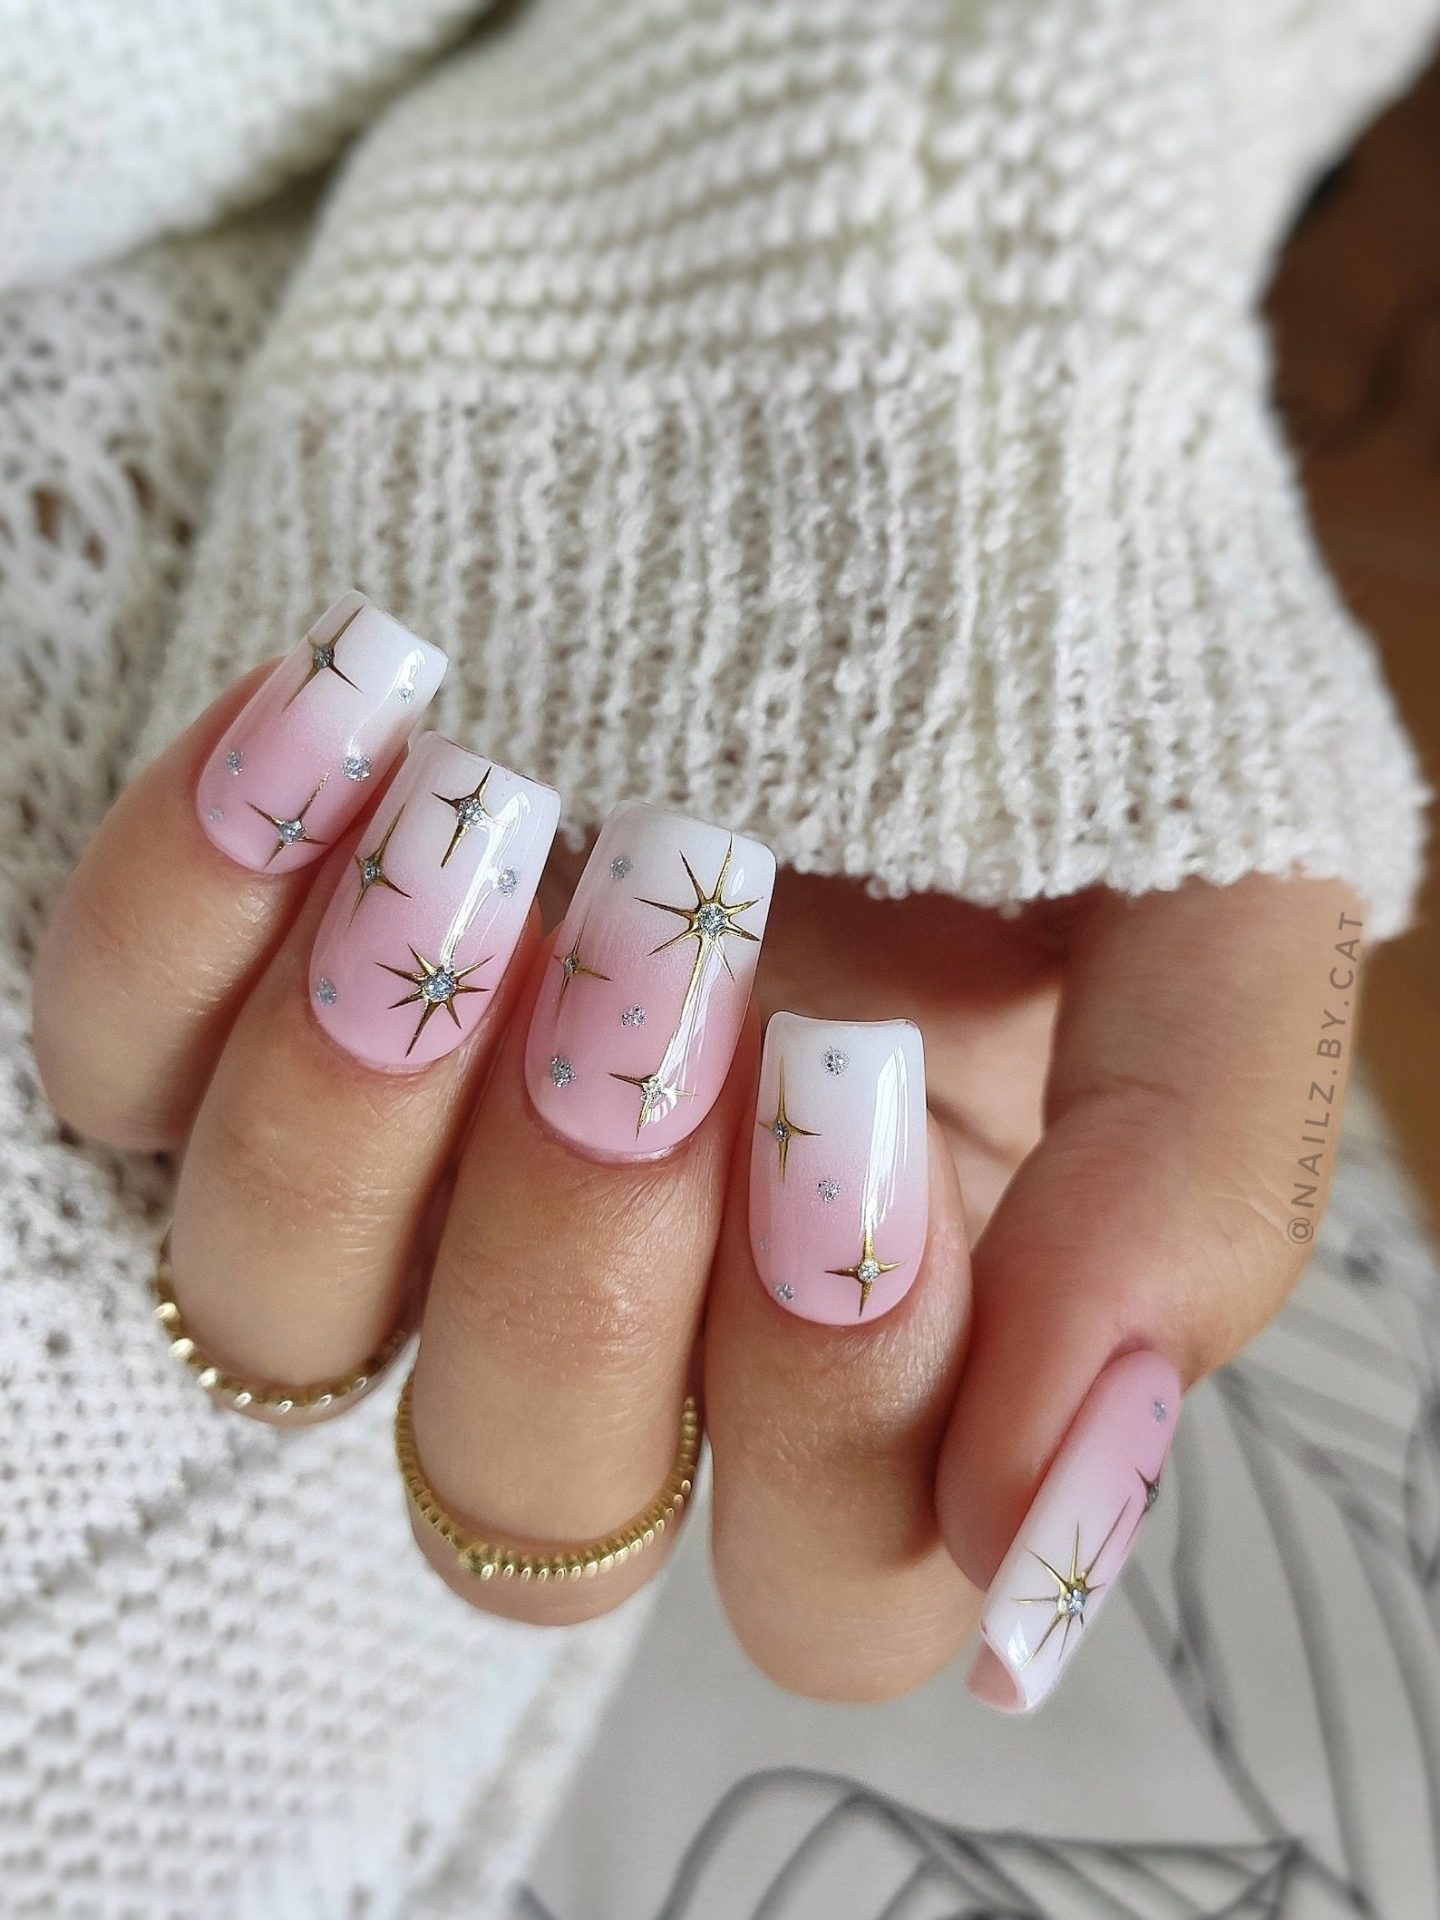 Cute white ombre French tip nails with celestial stars